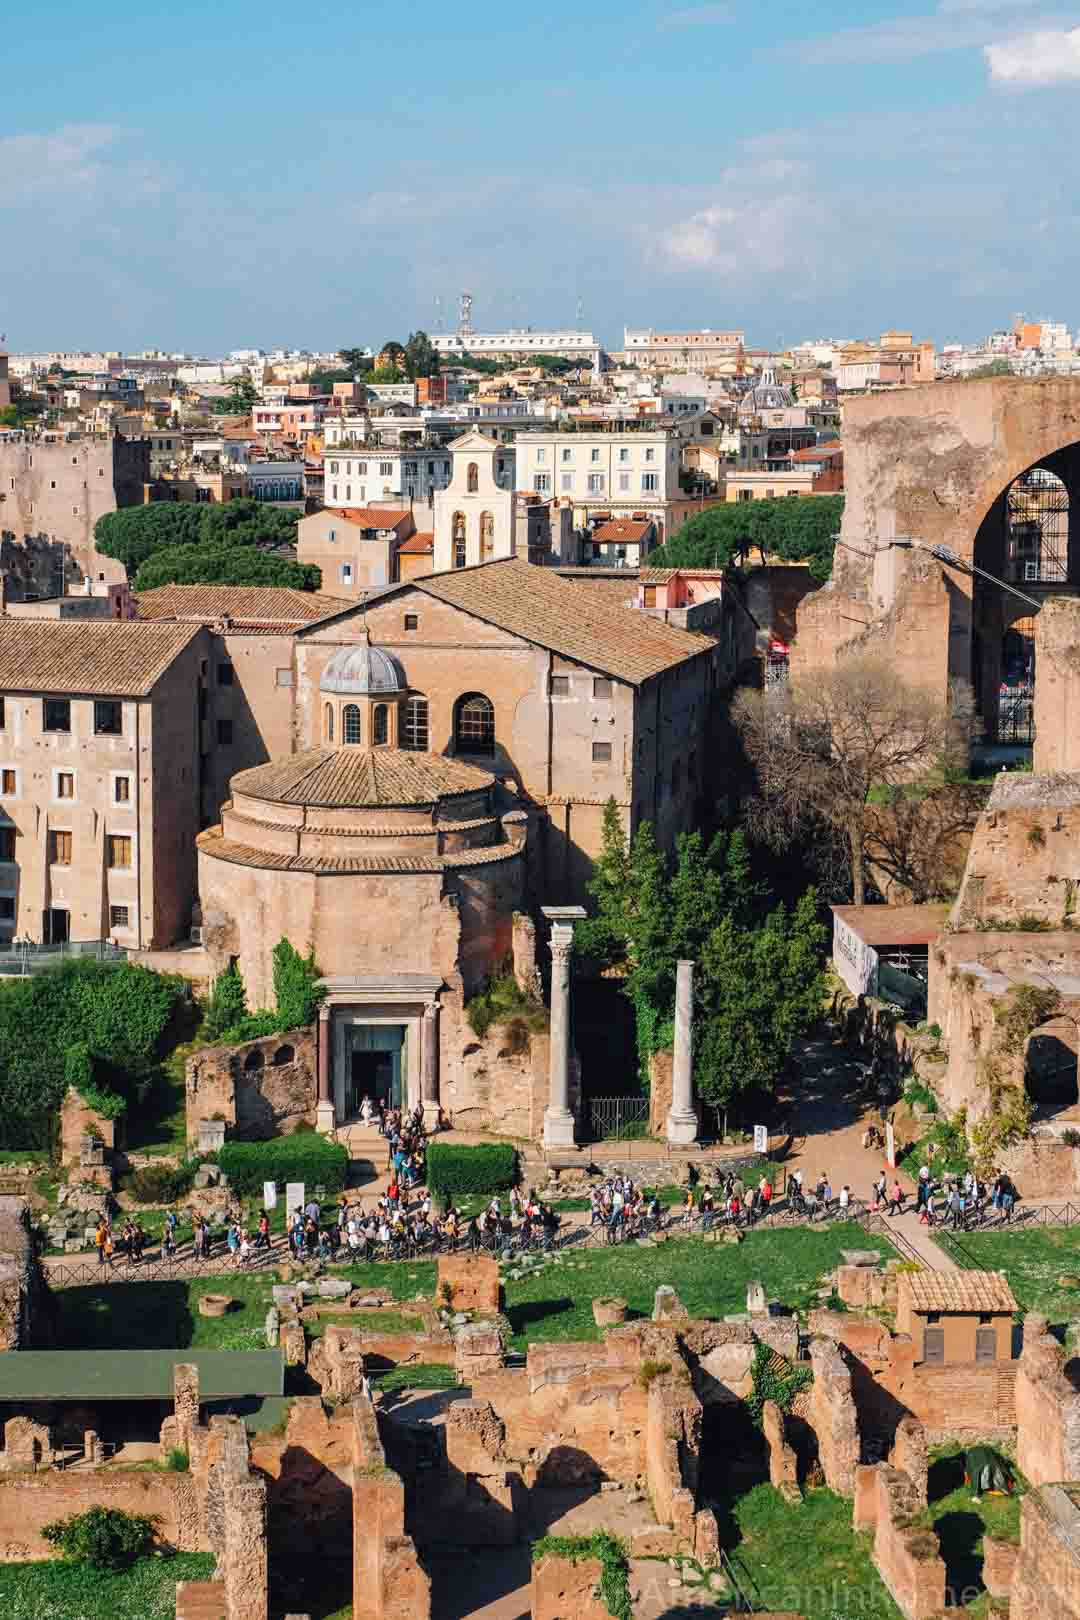 Visiting the Palatine Hill in Rome - An American in Rome